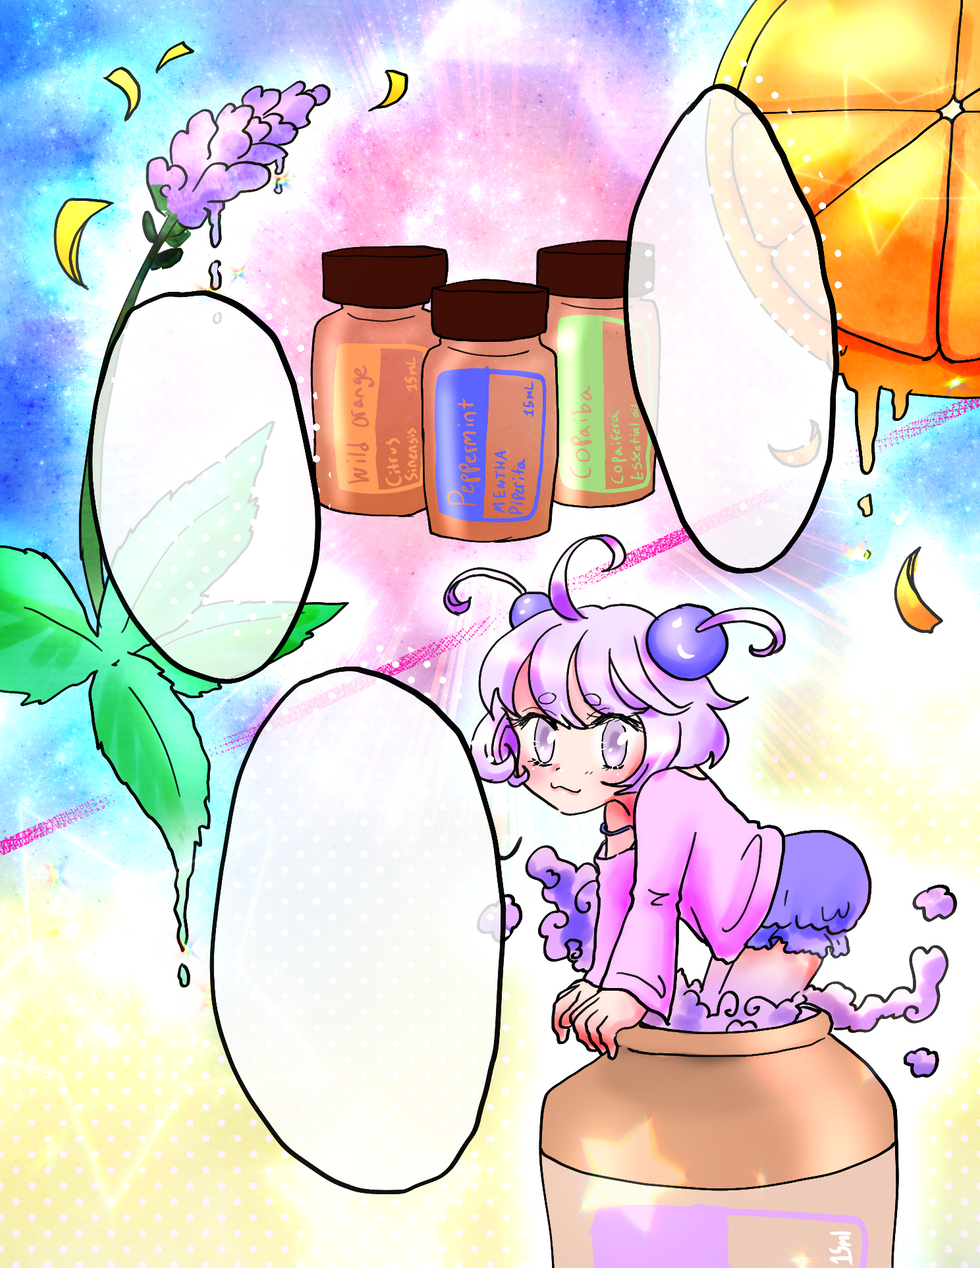 Freelance comic about essential oils for Choosing to Shine